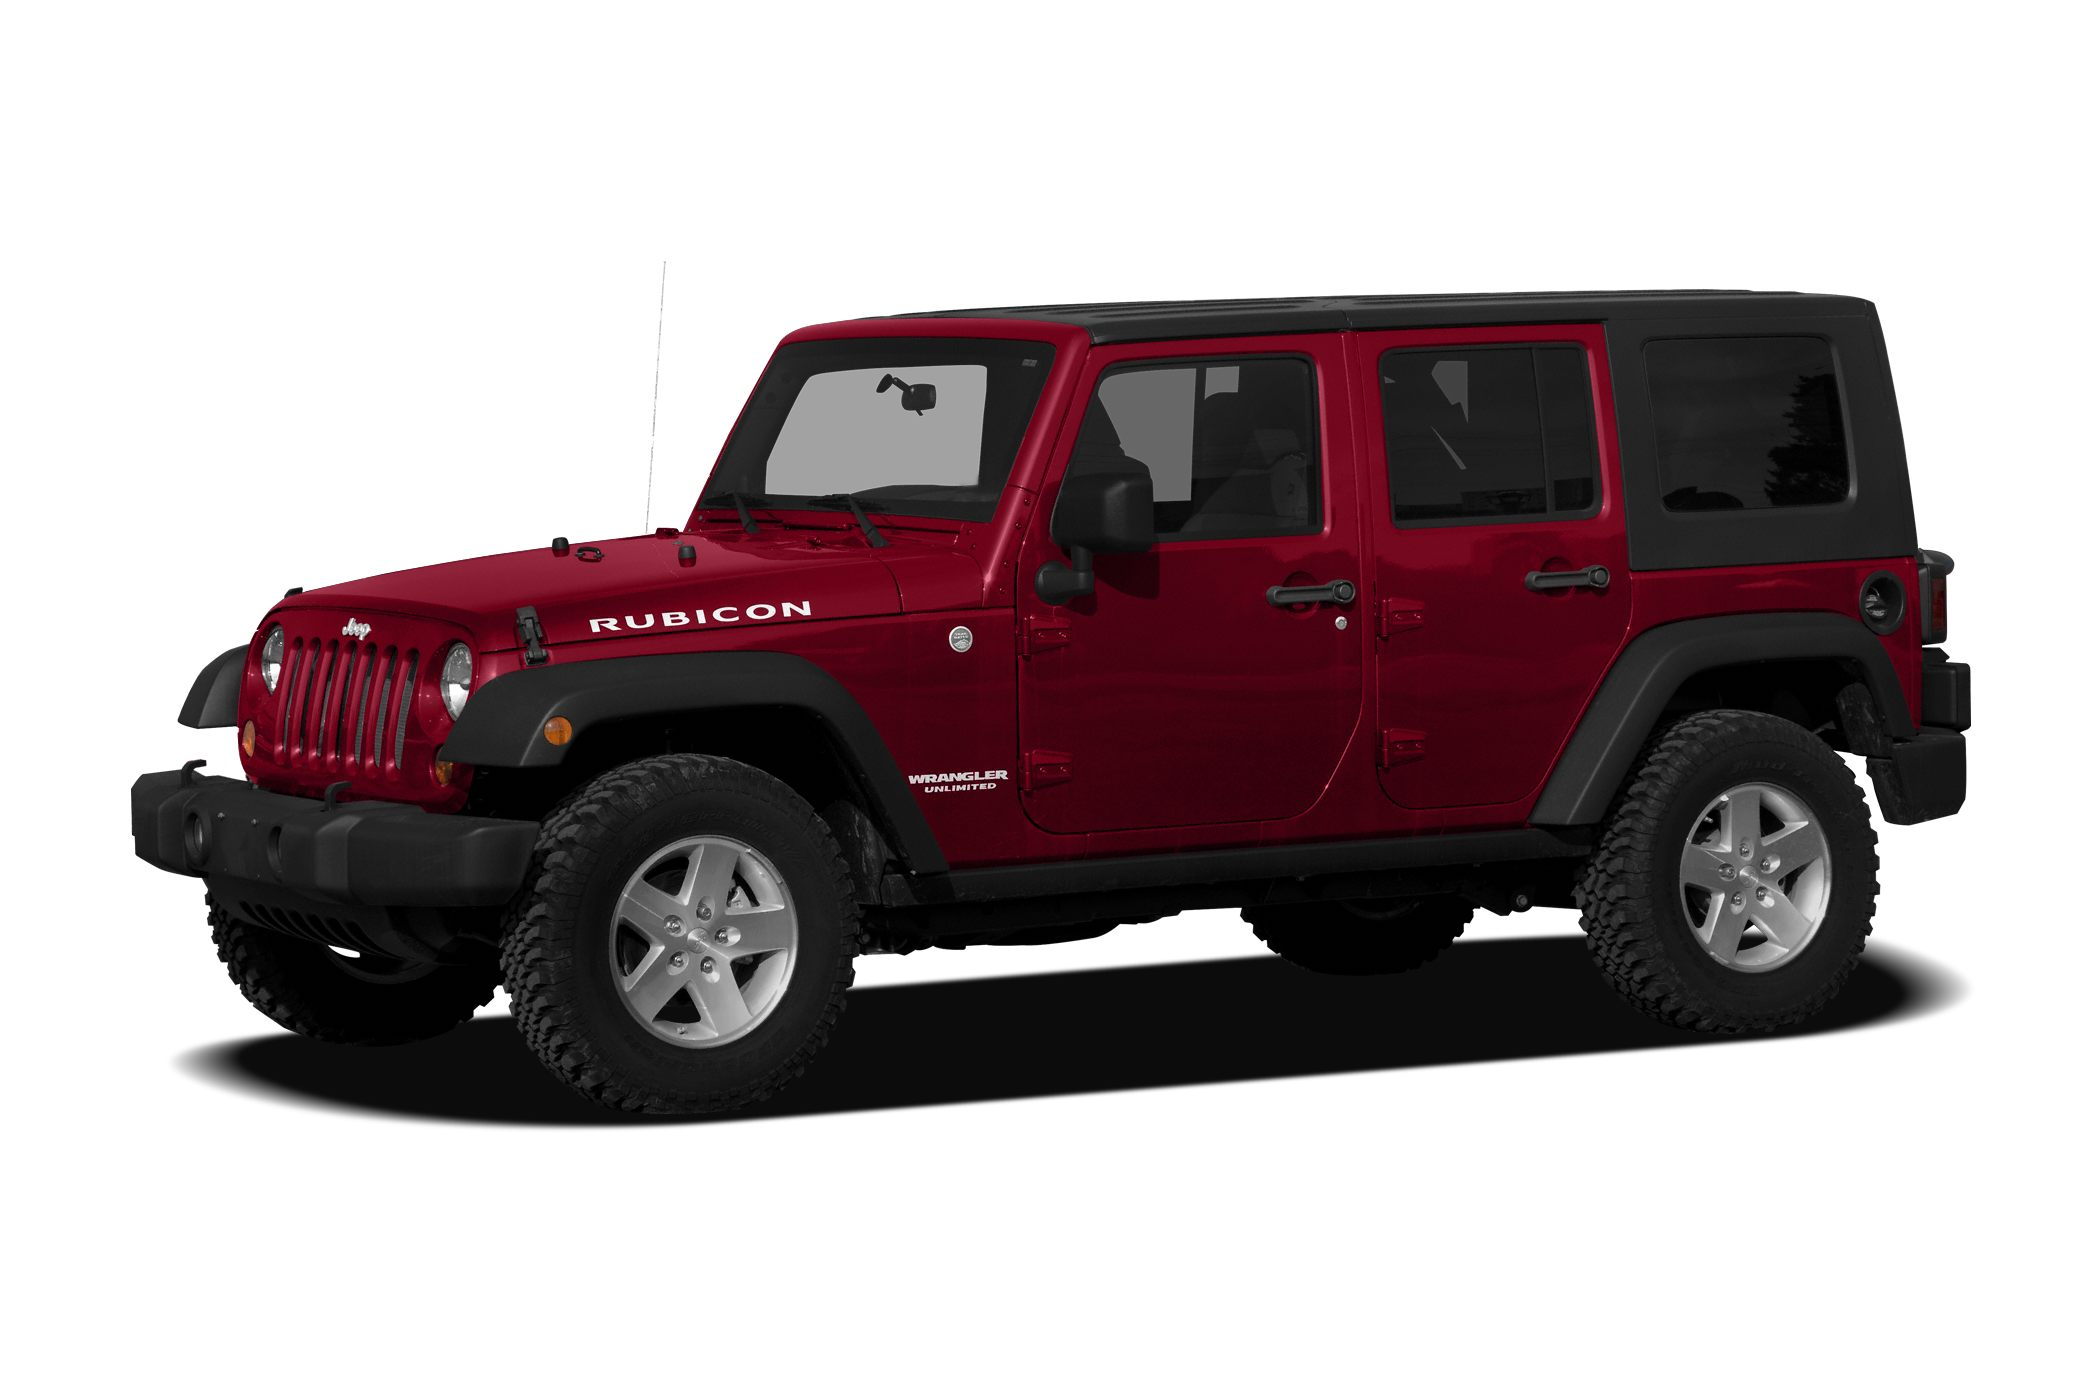 2009 Jeep Wrangler Unlimited Rubicon SUV for sale in La Grange for $24,490 with 62,726 miles.